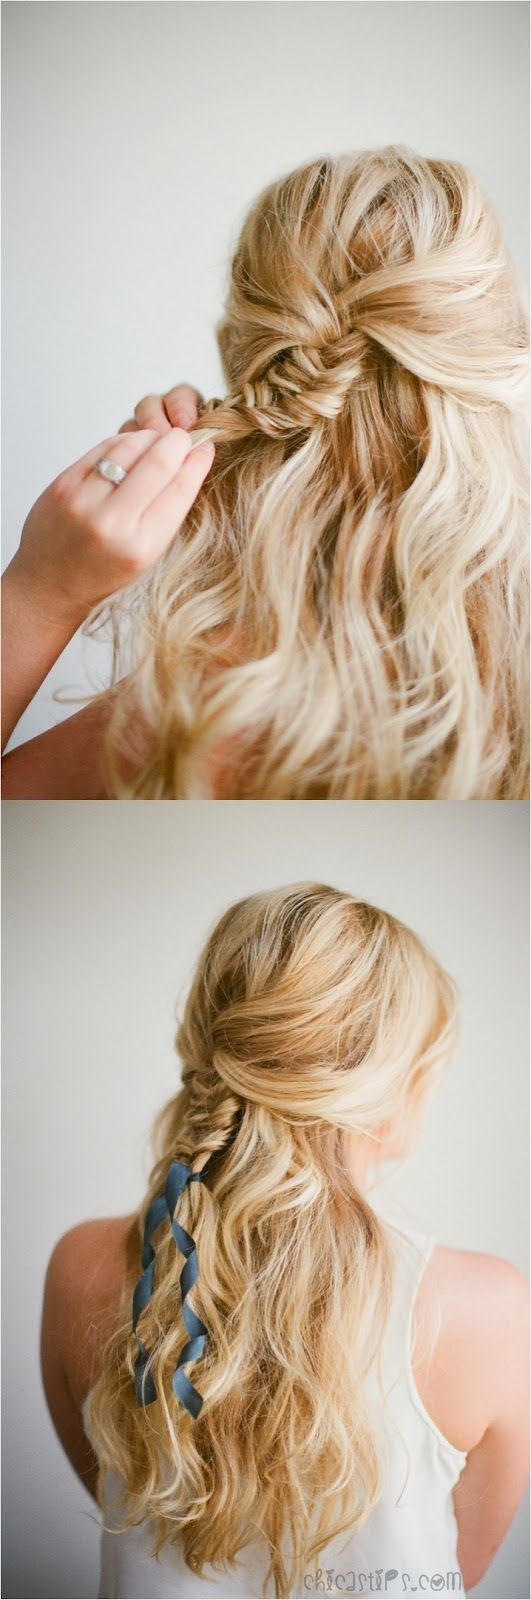 Half up fishtail braid with ribbon